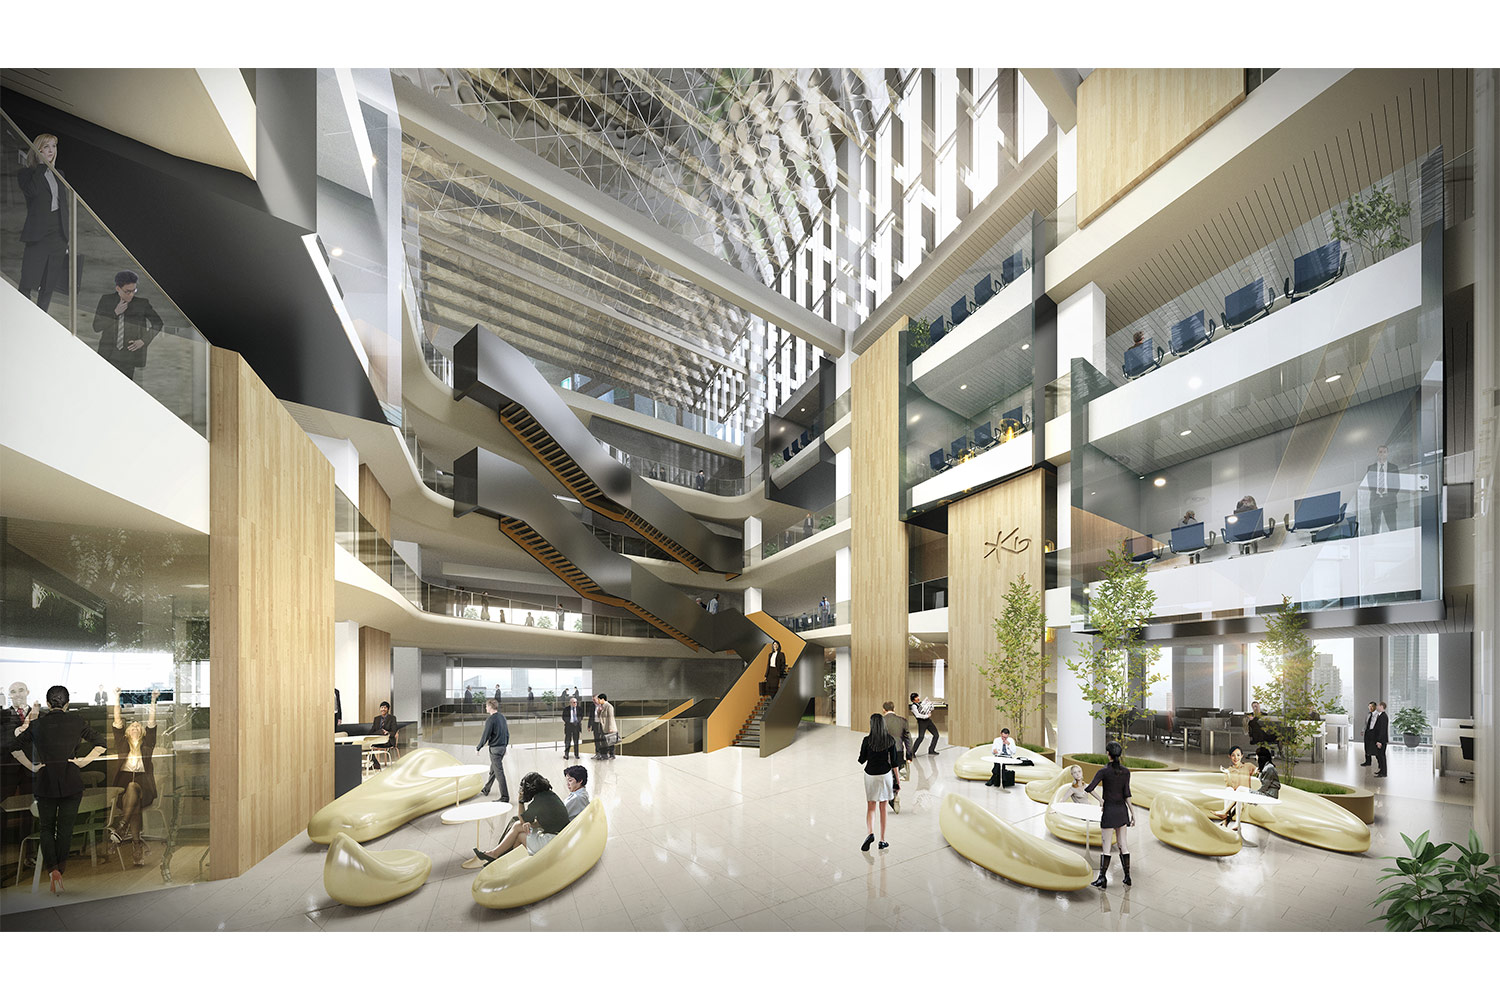 Projects_1500_Seoul-Office-Tower_05.jpg